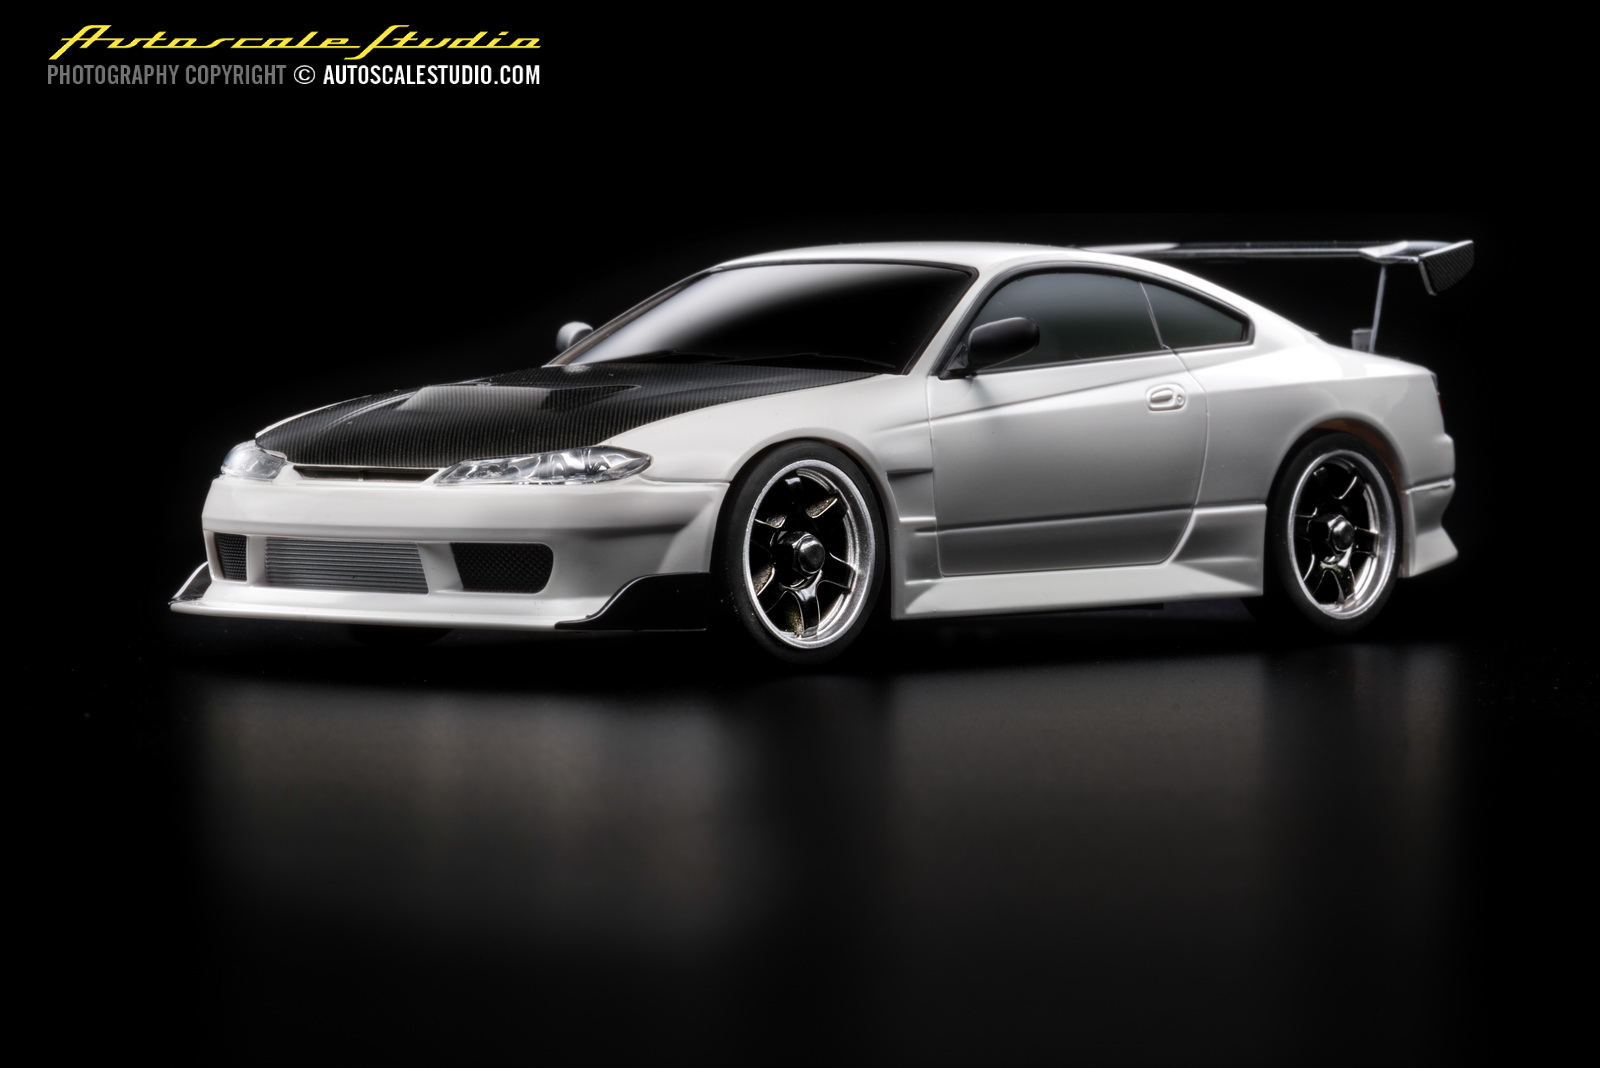 mzp413cw nissan silvia s15 gt wing carbonhood white. Black Bedroom Furniture Sets. Home Design Ideas